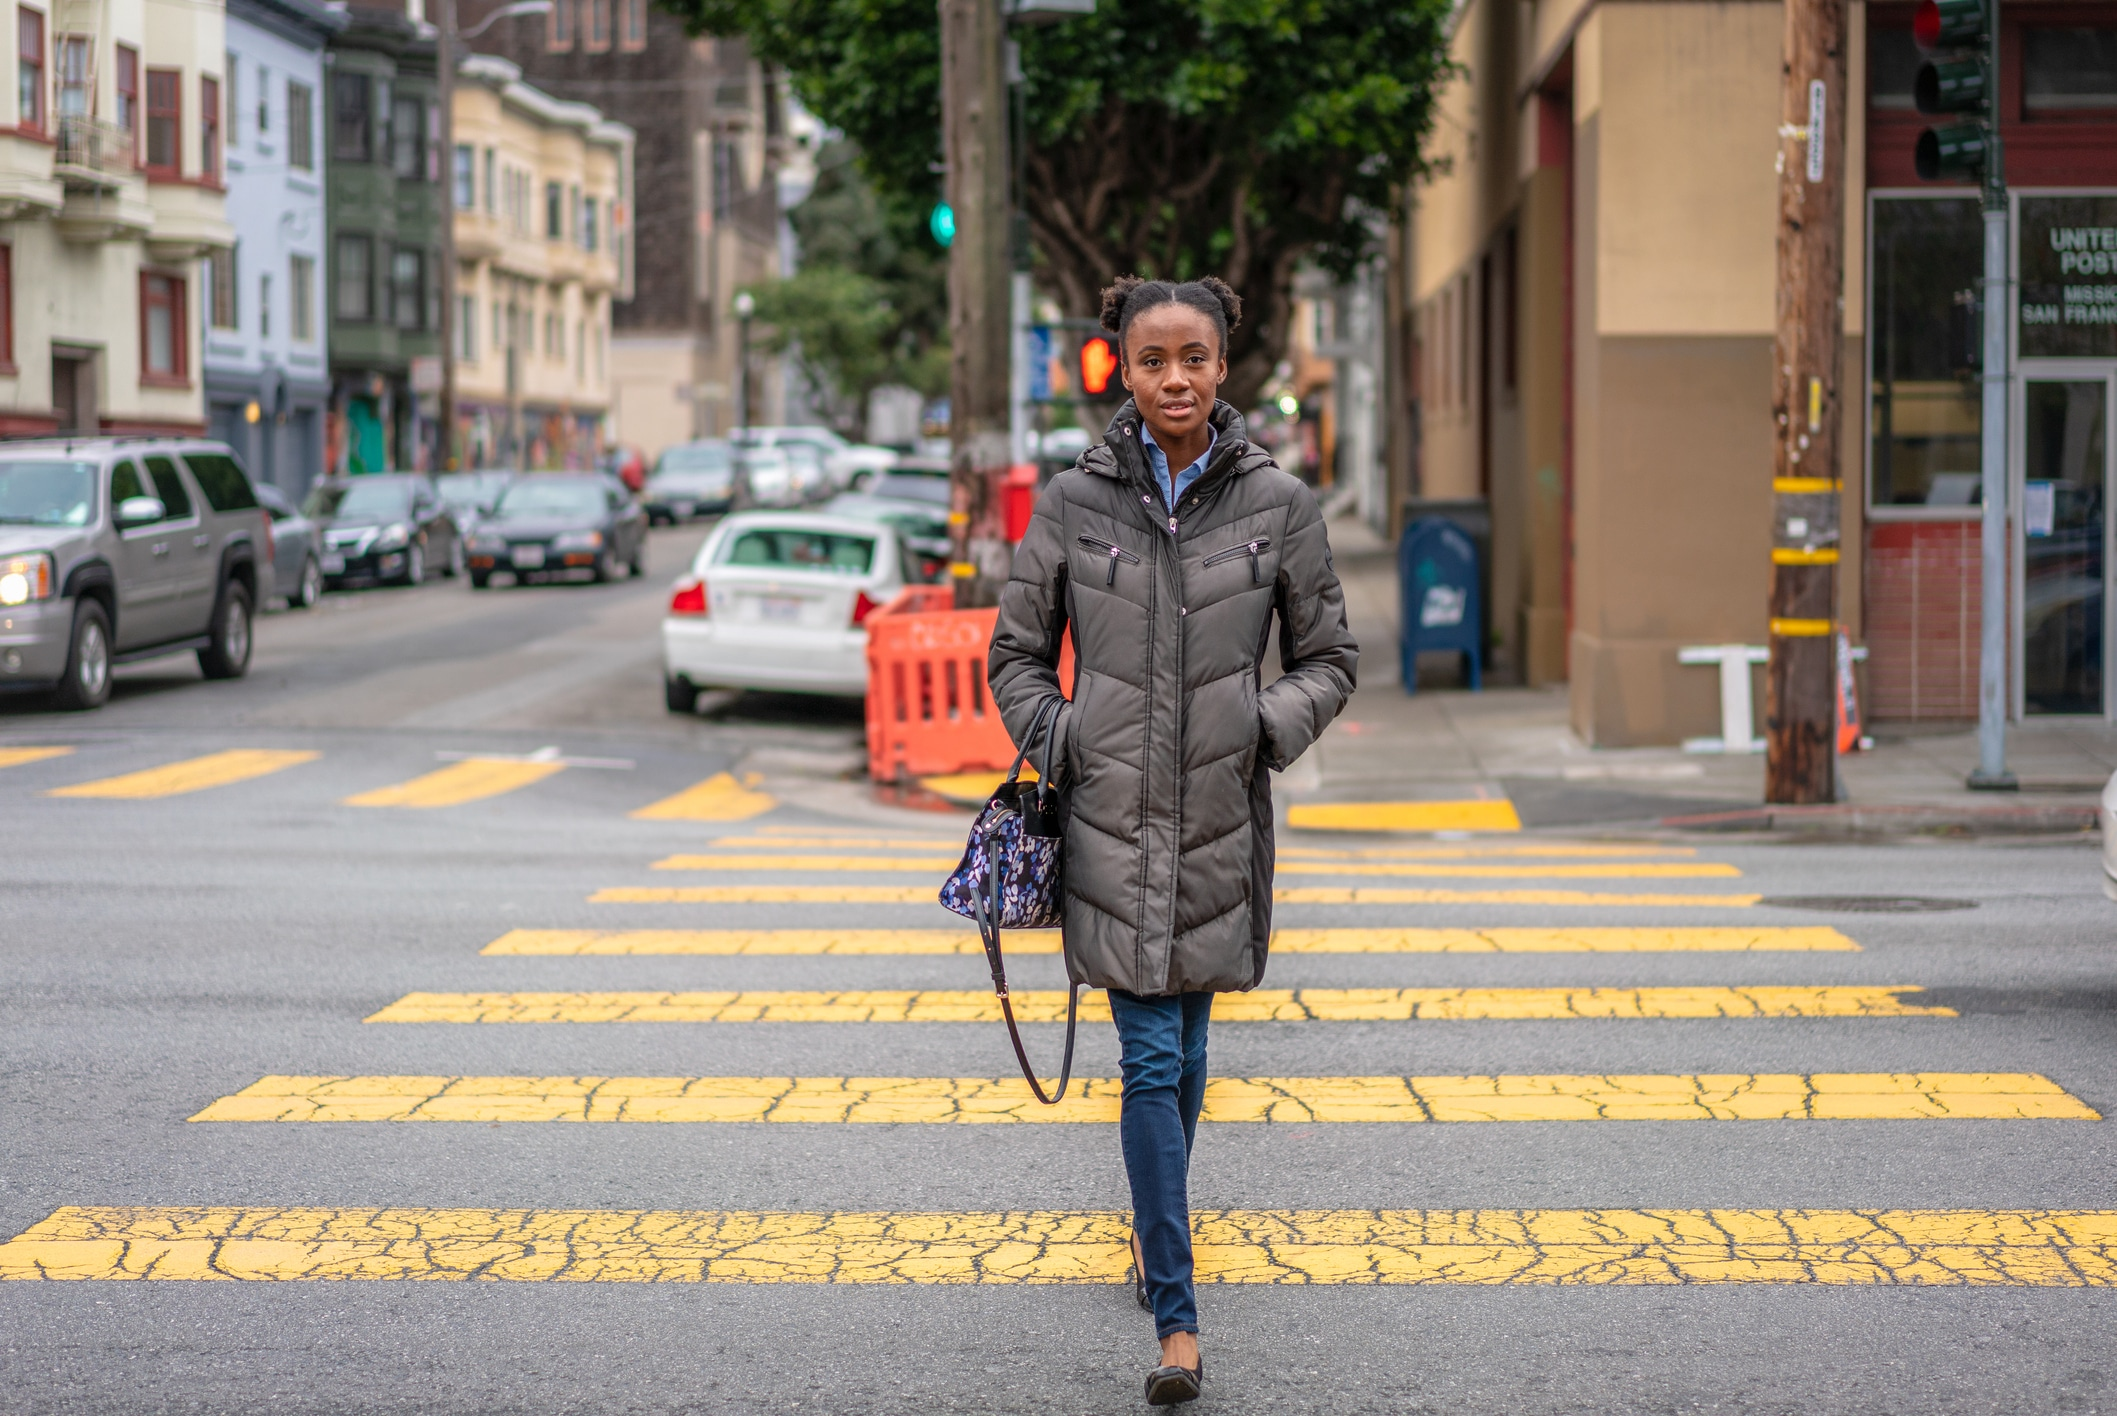 Learn What to Expect in a Pedestrian Wrongful Death Case